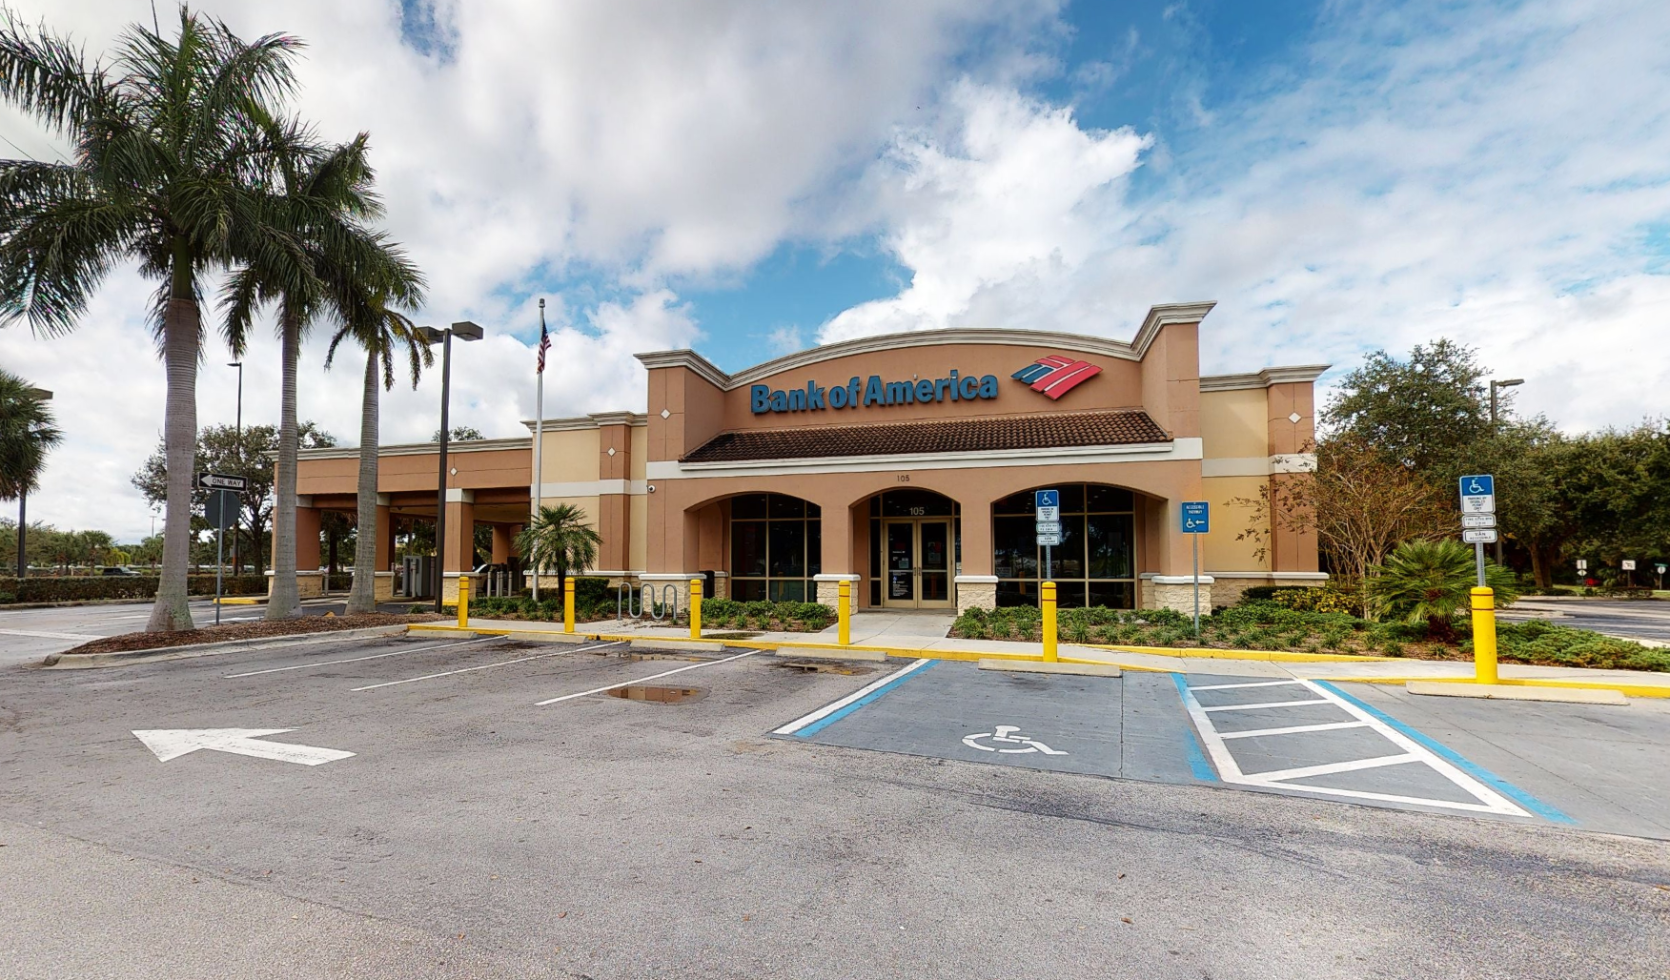 Bank of America financial center with drive-thru ATM and teller | 105 N Congress Ave, Lake Park, FL 33403